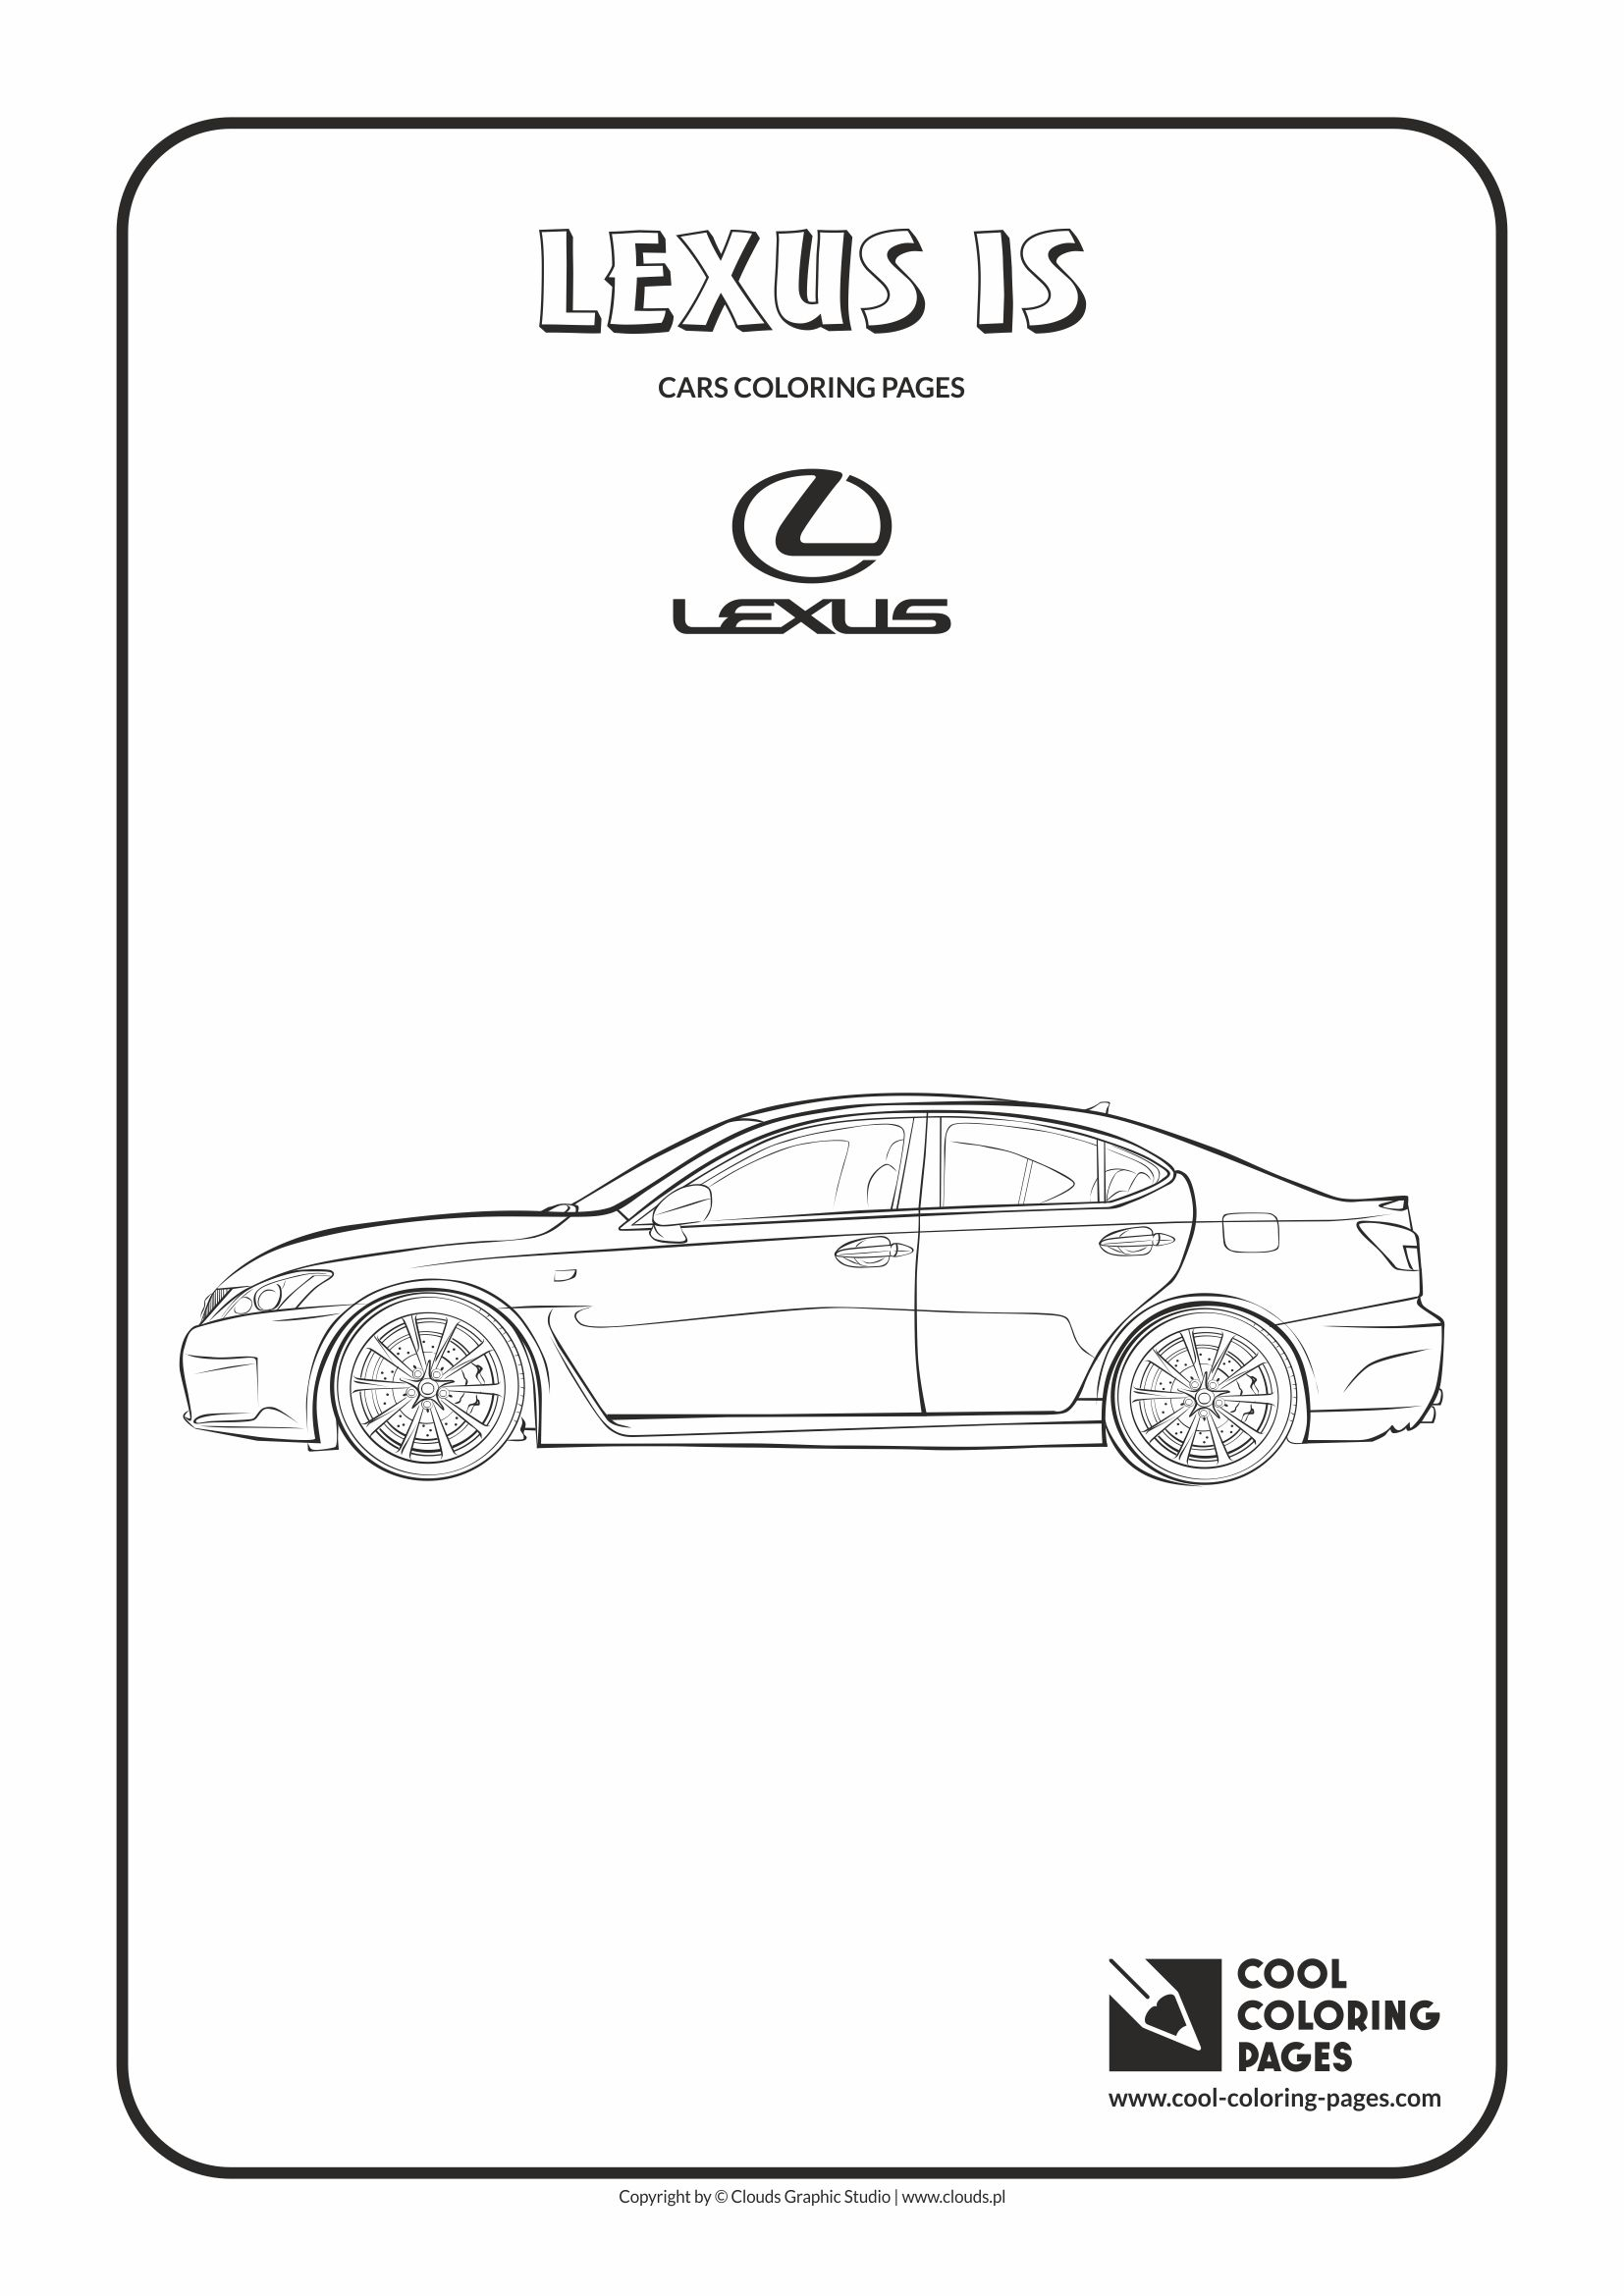 Cool Coloring Pages - Vehicles / Lexus IS / Coloring page with Lexus IS